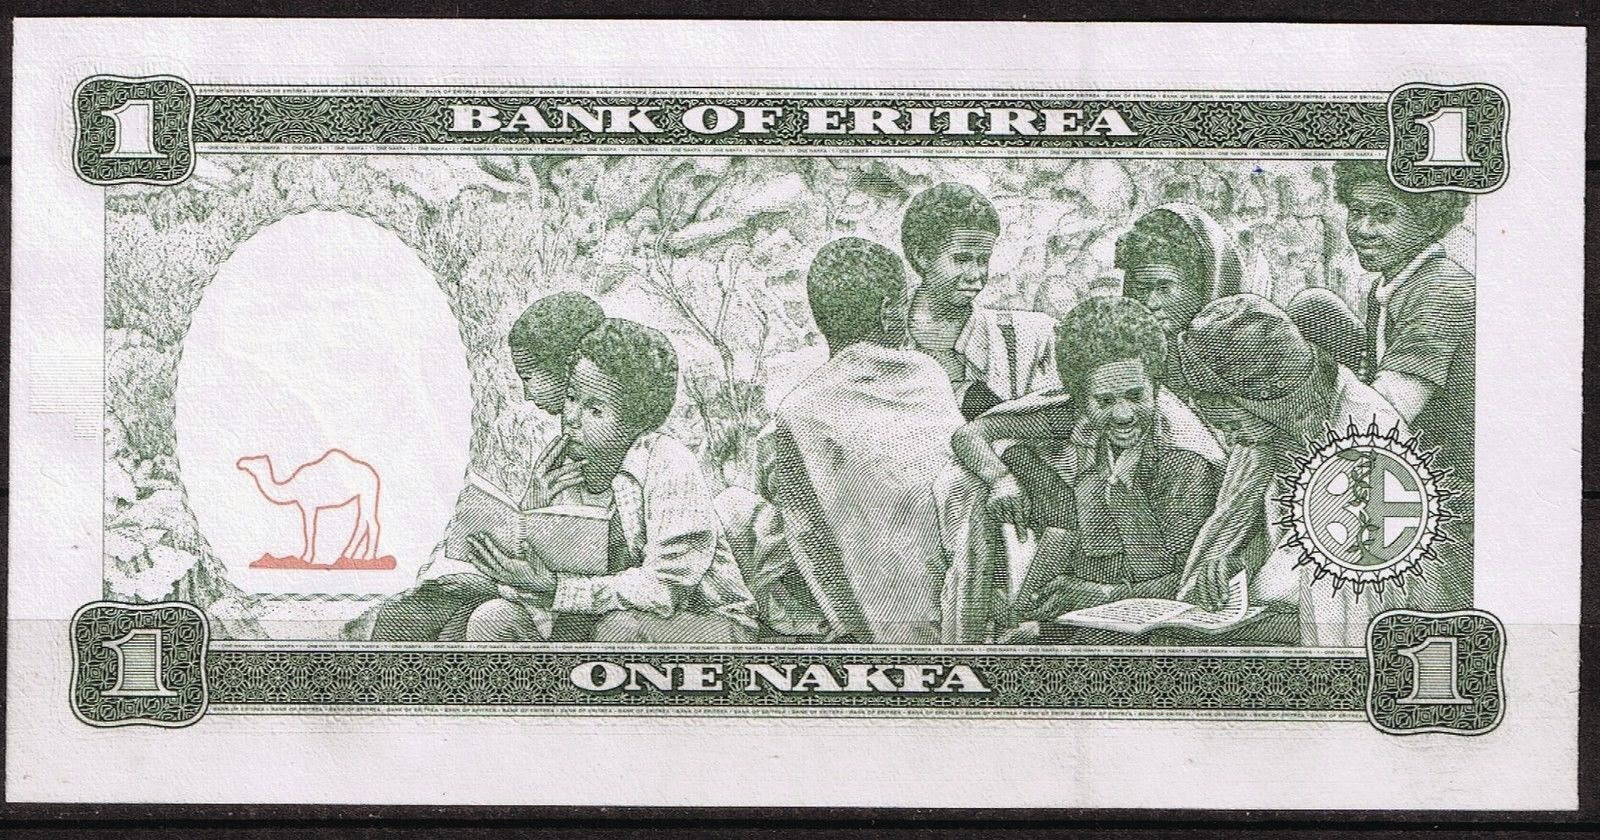 Currency of Eritrea 1 Nakfa Note